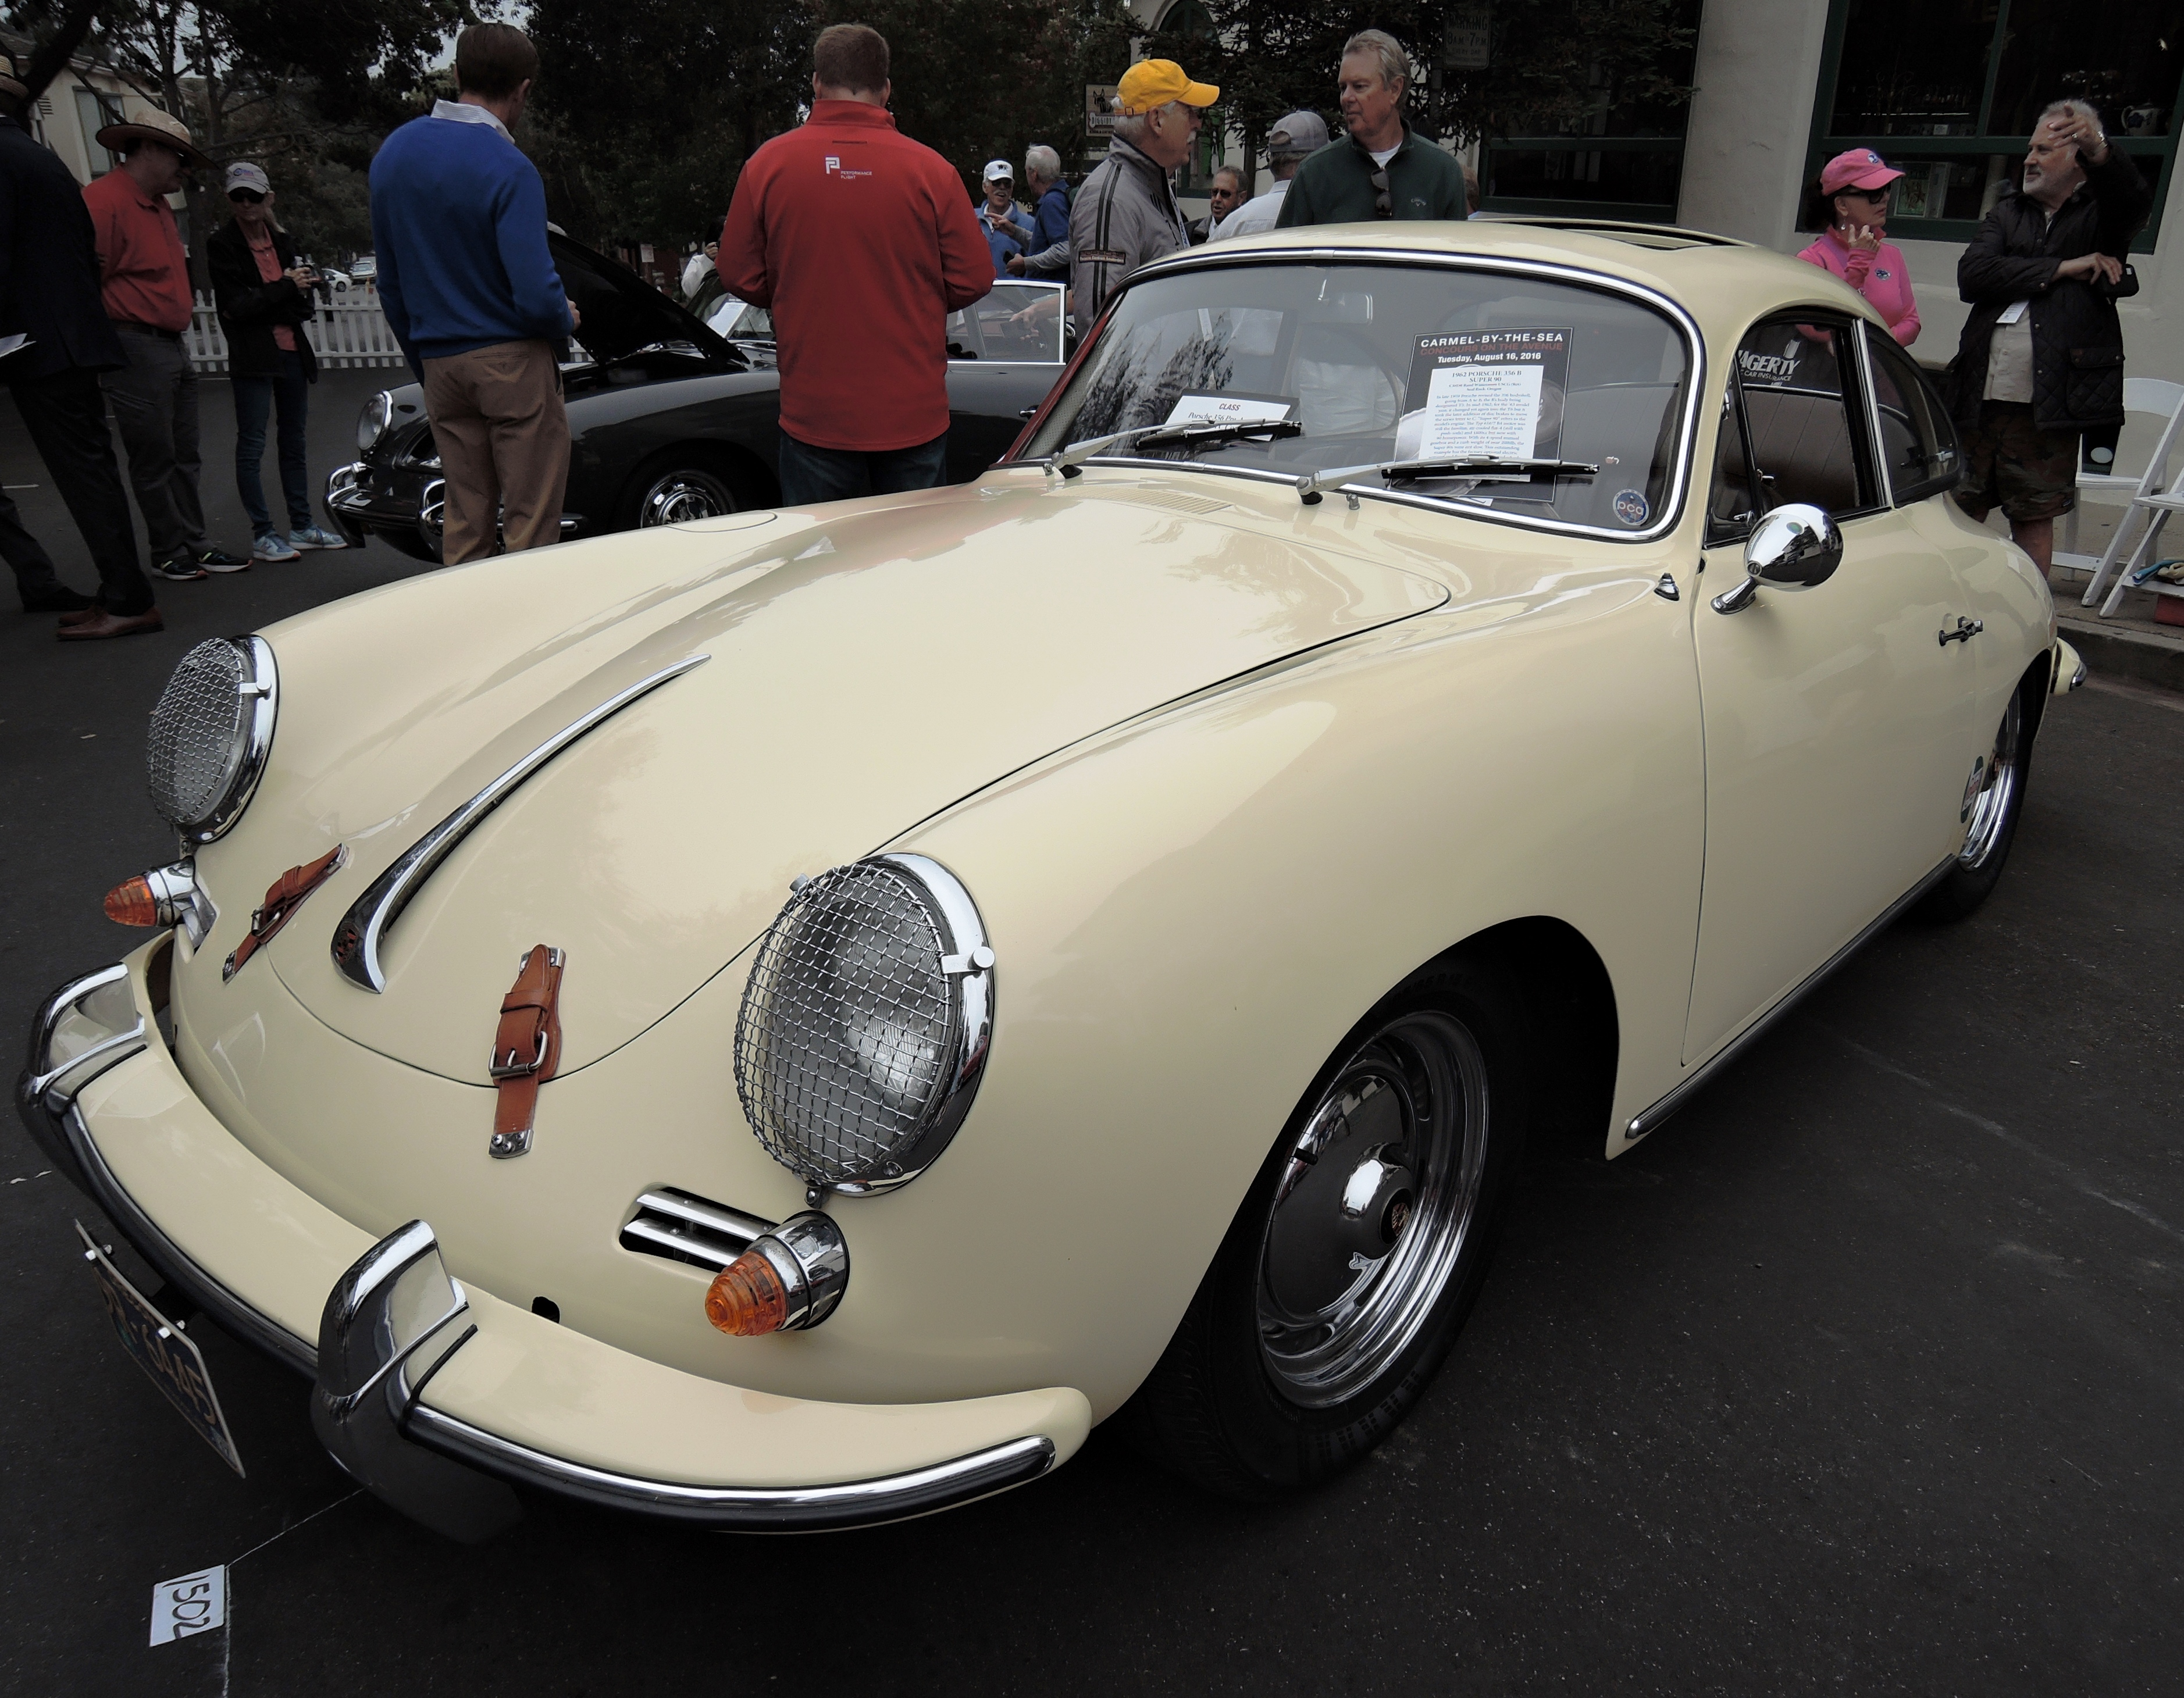 white 1962 Porsche 356 B Super 90 - Concours on the Ave Carmel